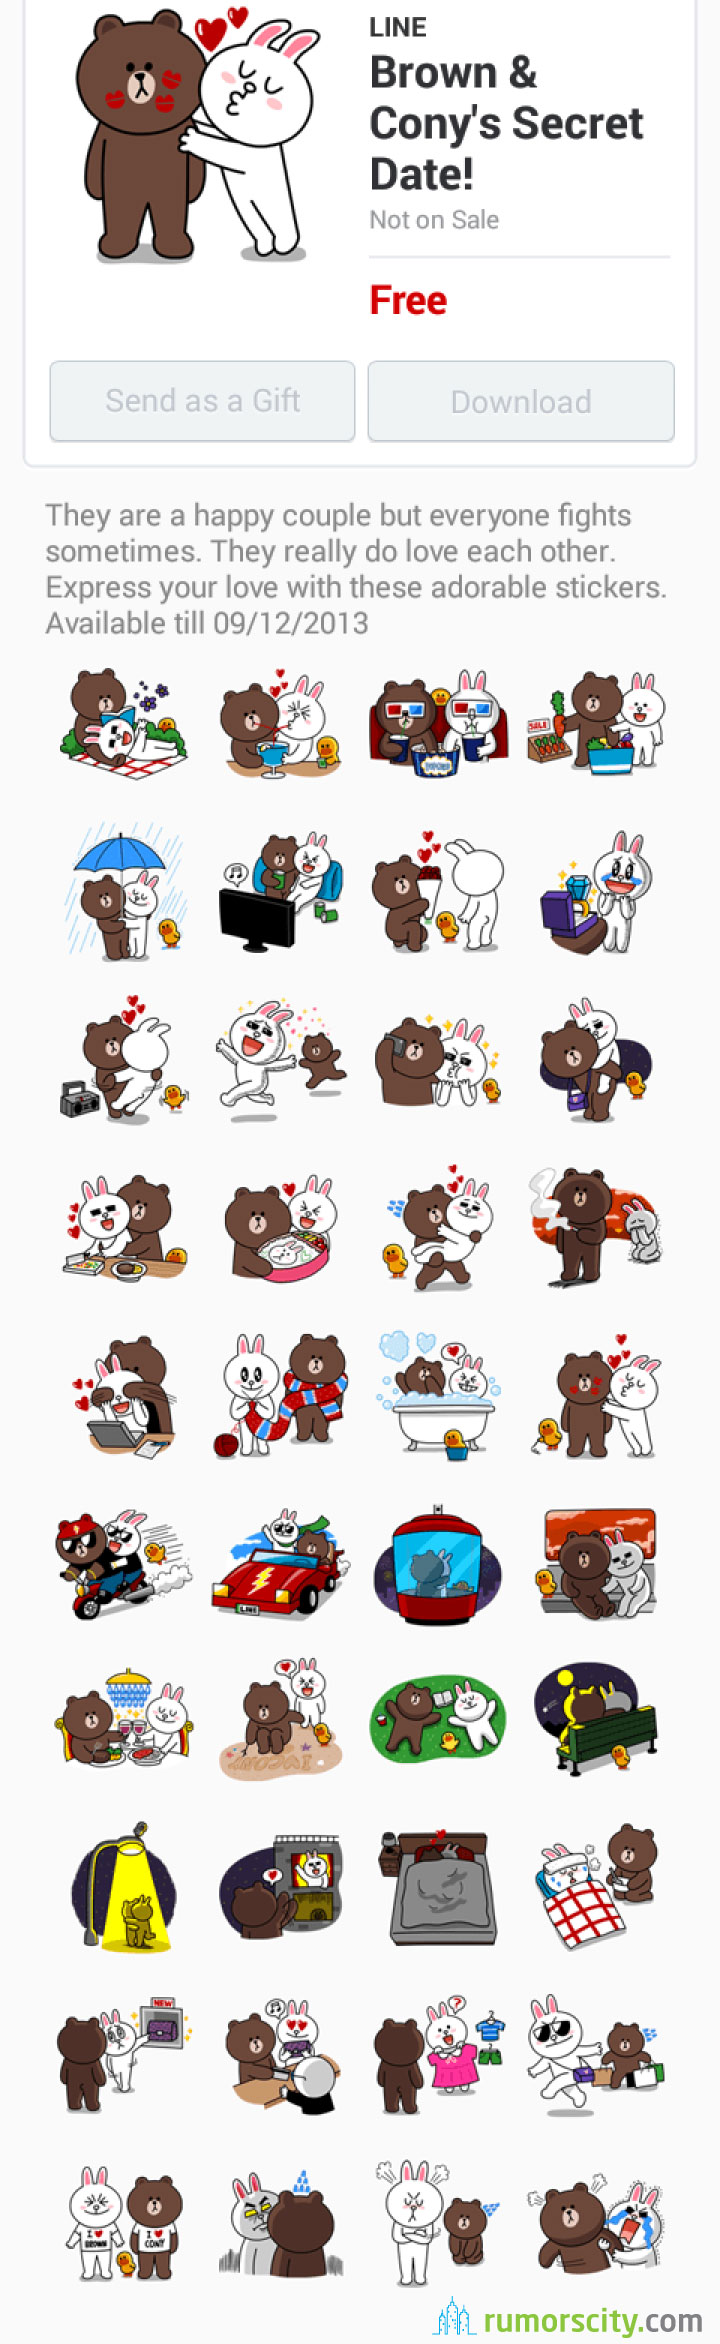 Brown-and-Conys-Secret-Date-Line-sticker-in-Spain-02